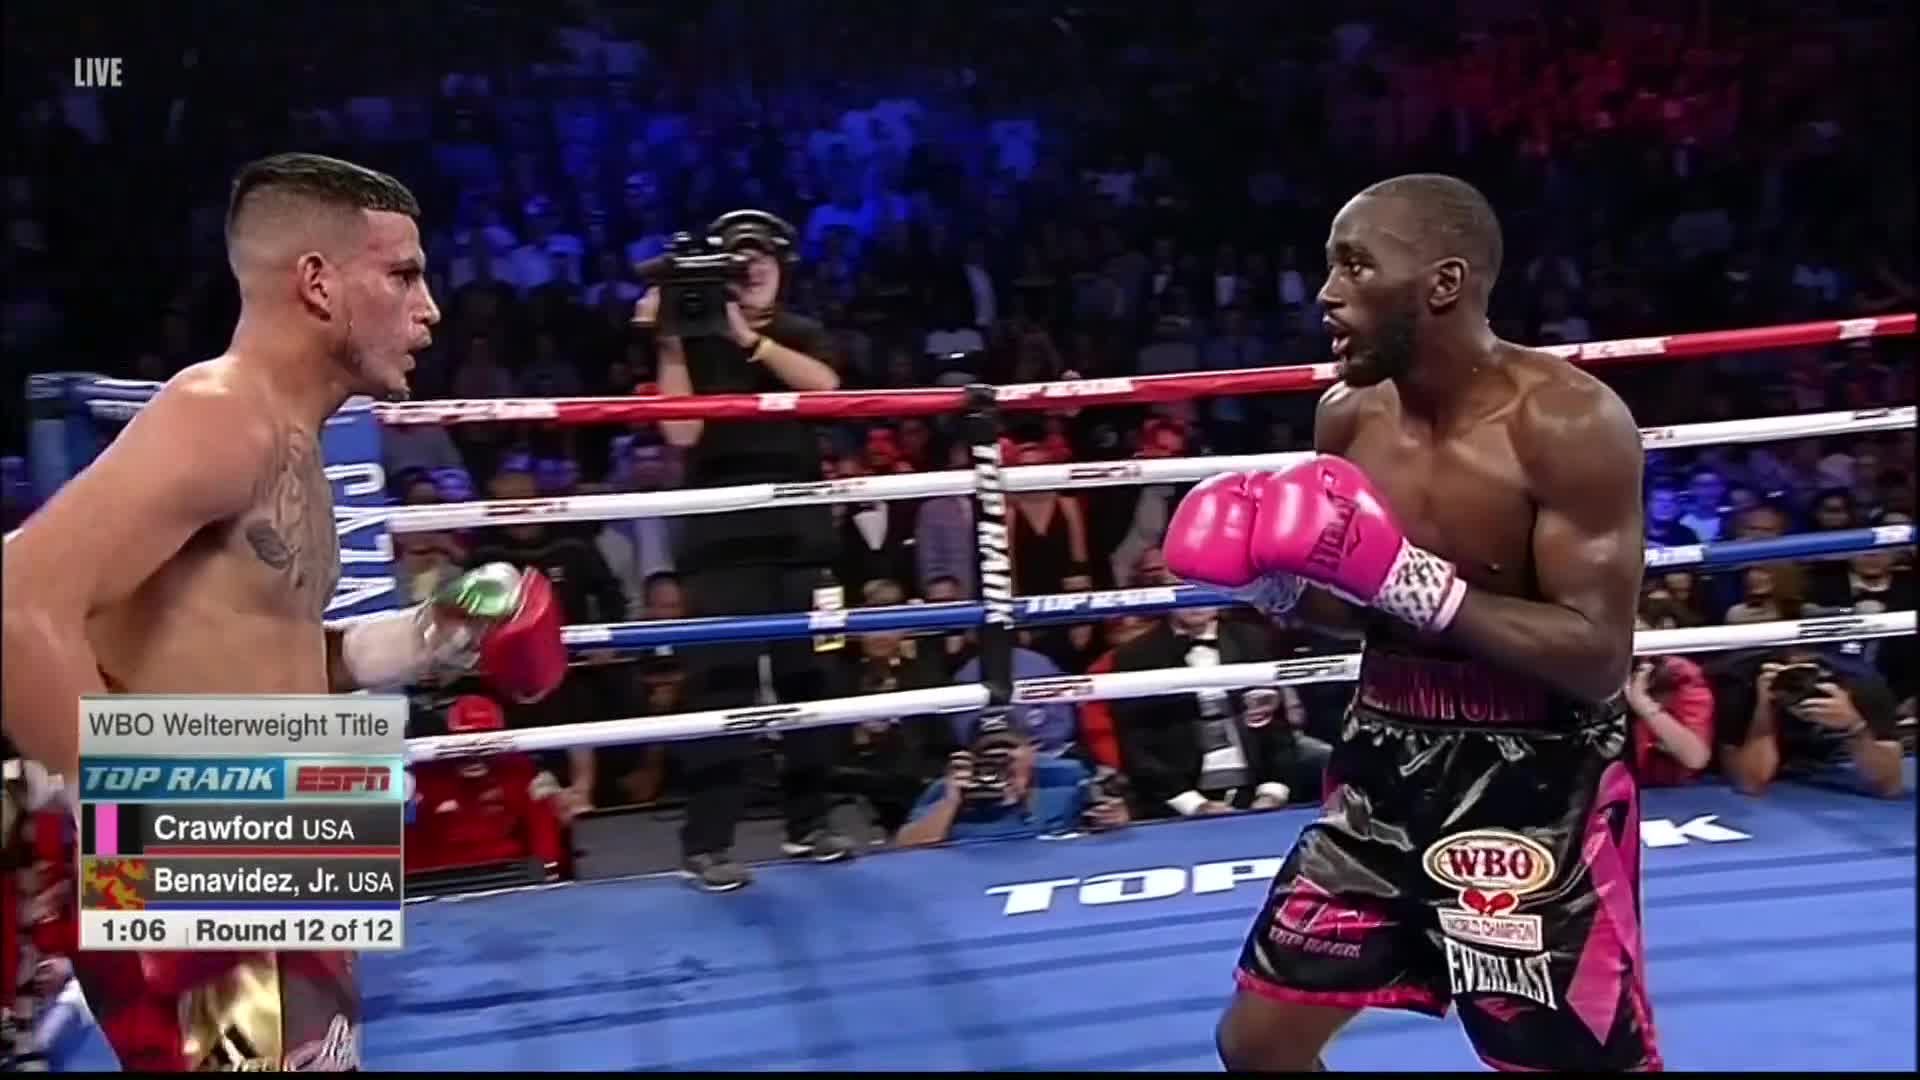 boxing, david benavidez jr, terence crawford, Crawford drops Benavidez Jr with less than a minute left in the final round GIFs